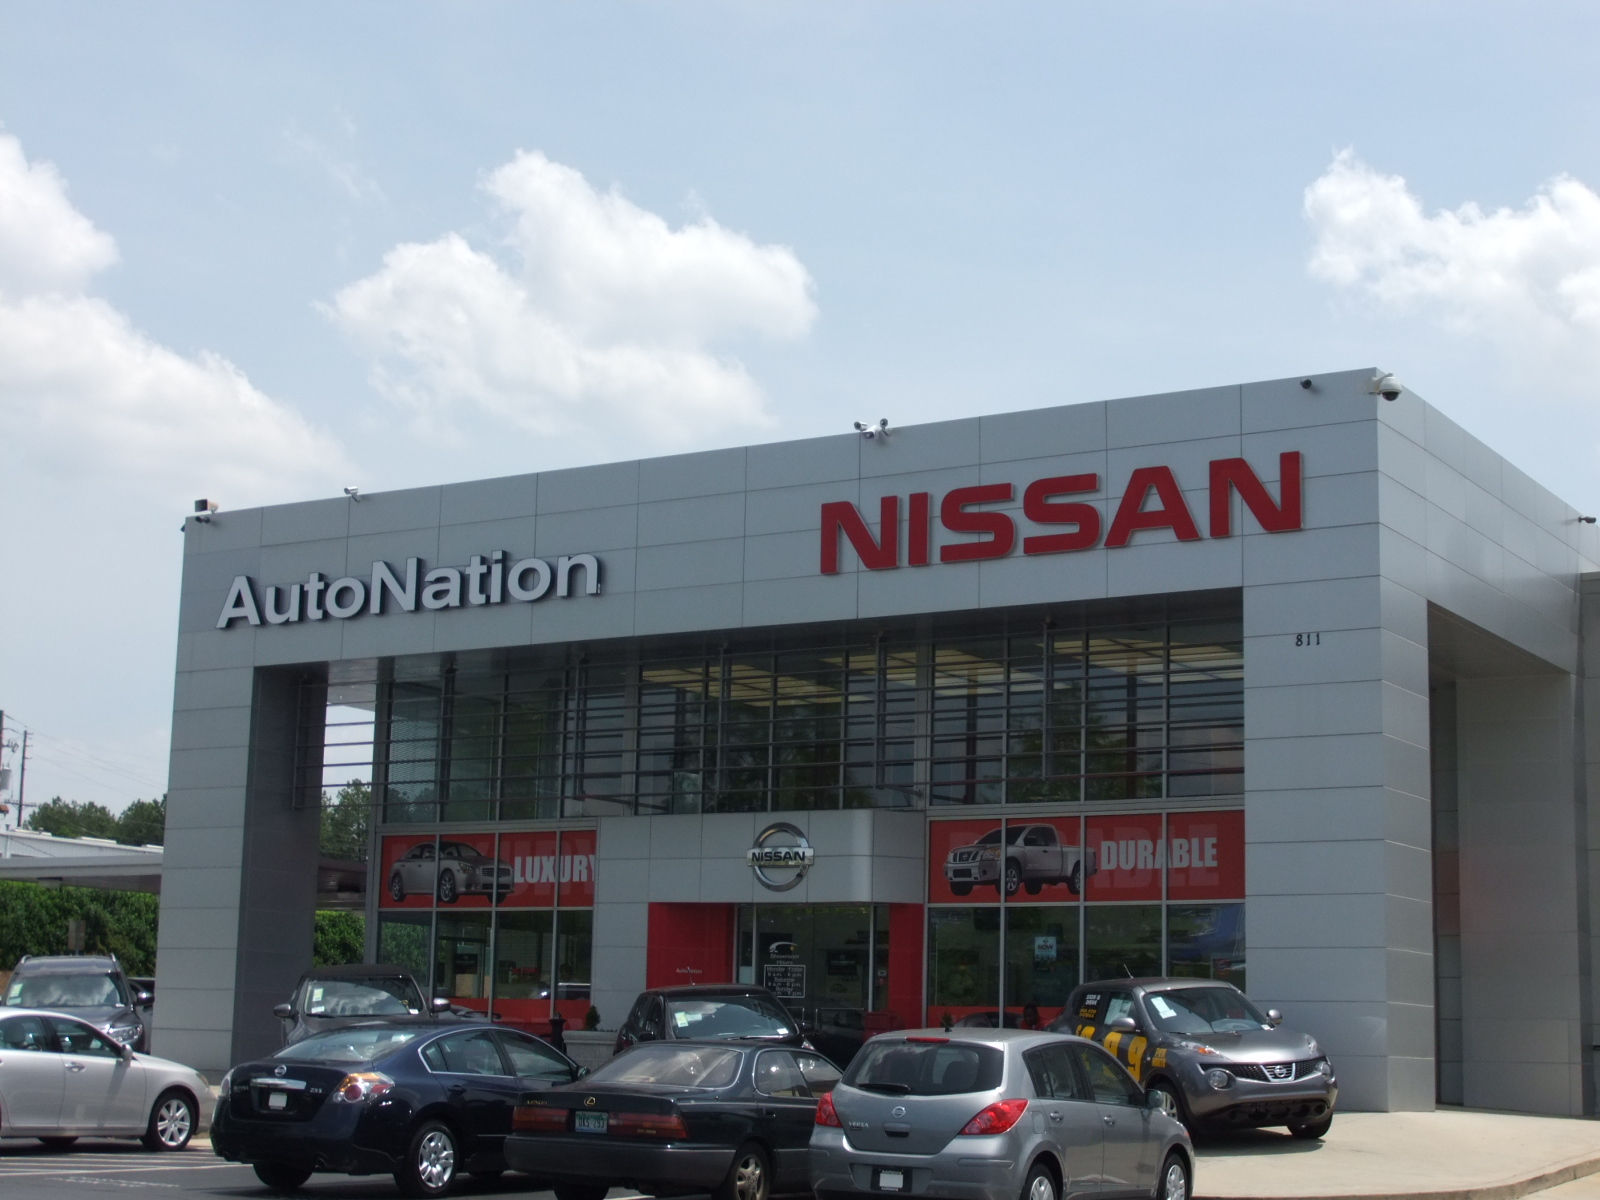 Nissan Auto Nation   2019-2020 New Car Update